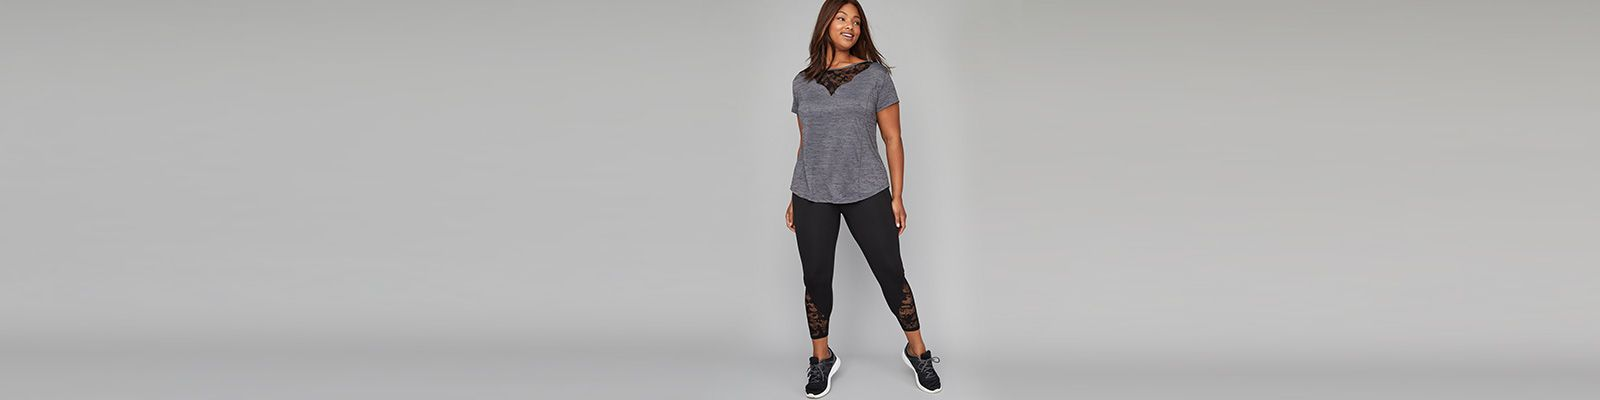 Plus size active leggings, sport bra and tee with pink and black details